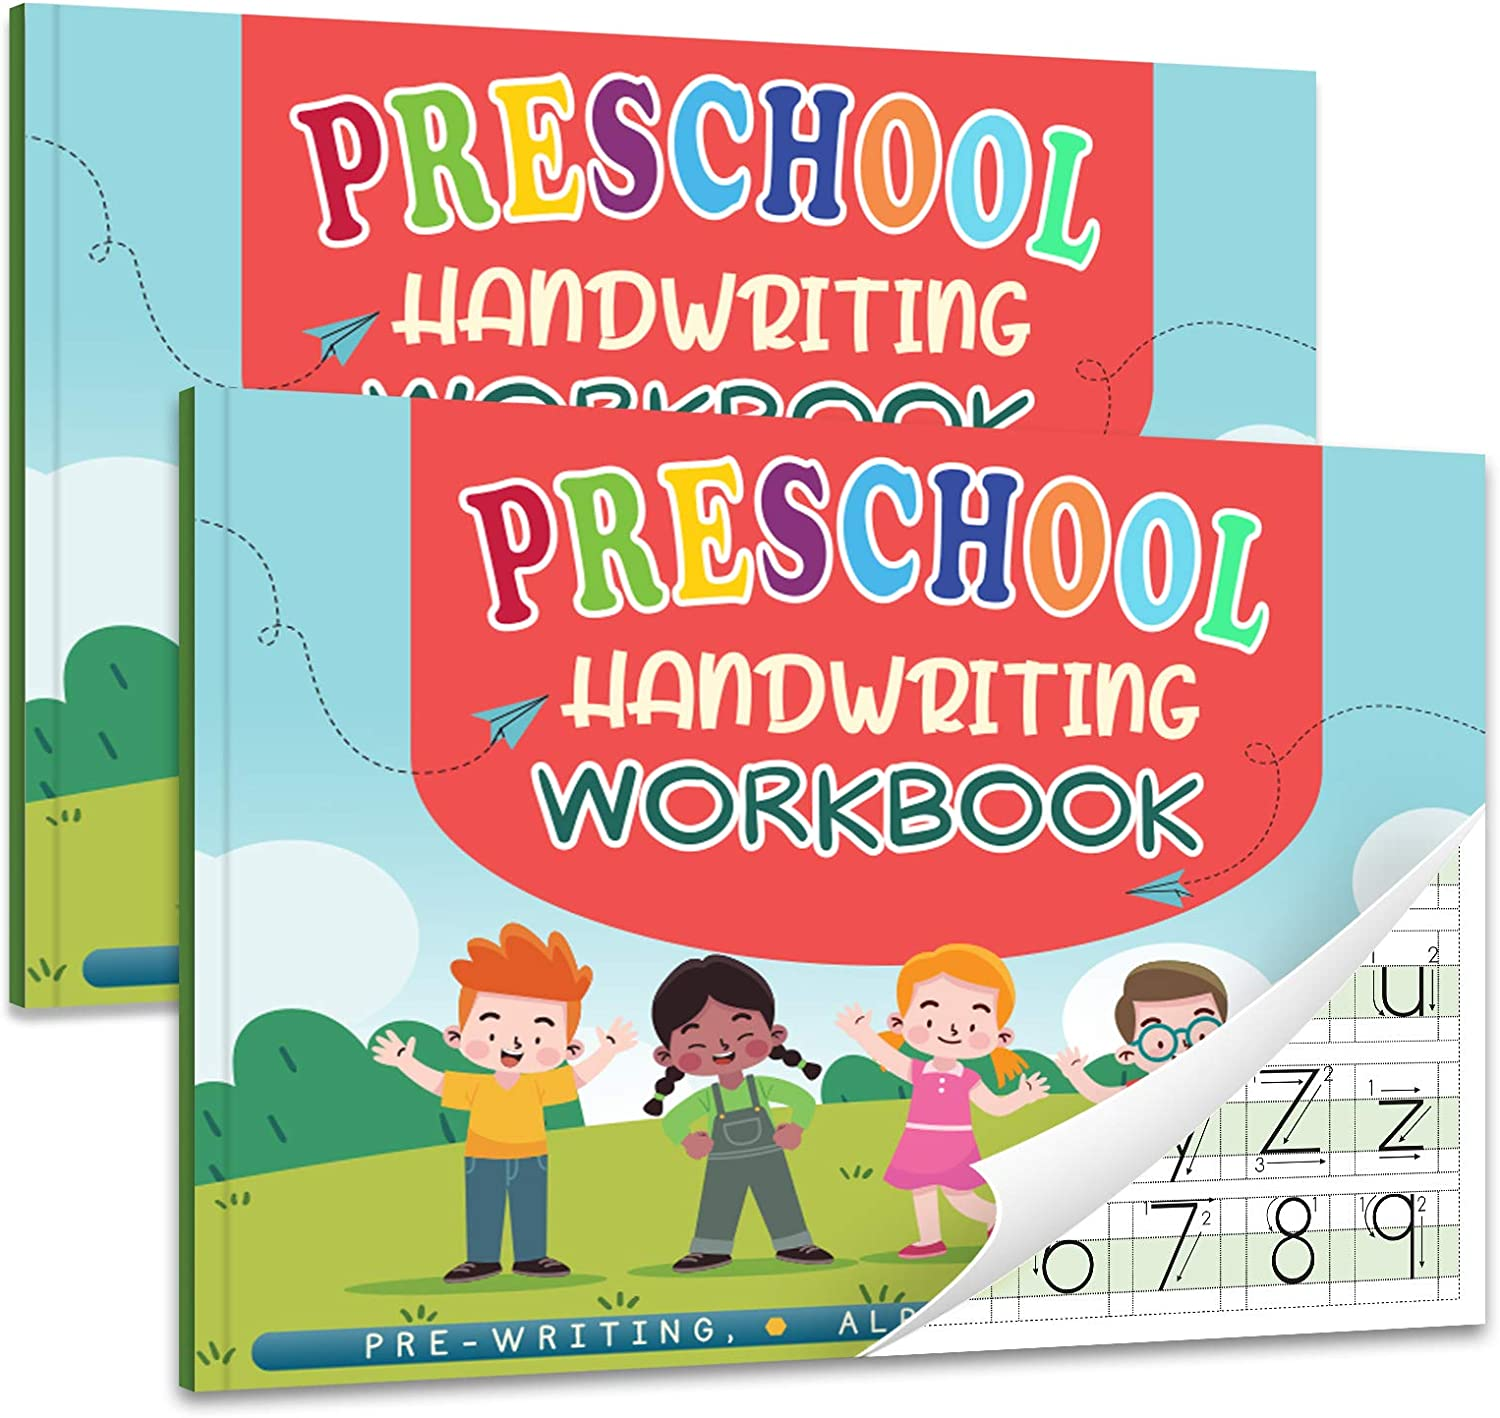 Kindergarten/Preschool Handwriting Workbook- Alphabet & Number Tracing Writing Paper with Lines, Learning Tools for Age 2/3/4/5 Year Old Kids/Boys/Girls, ABC Learning for Toddler, Homeschool Supplies